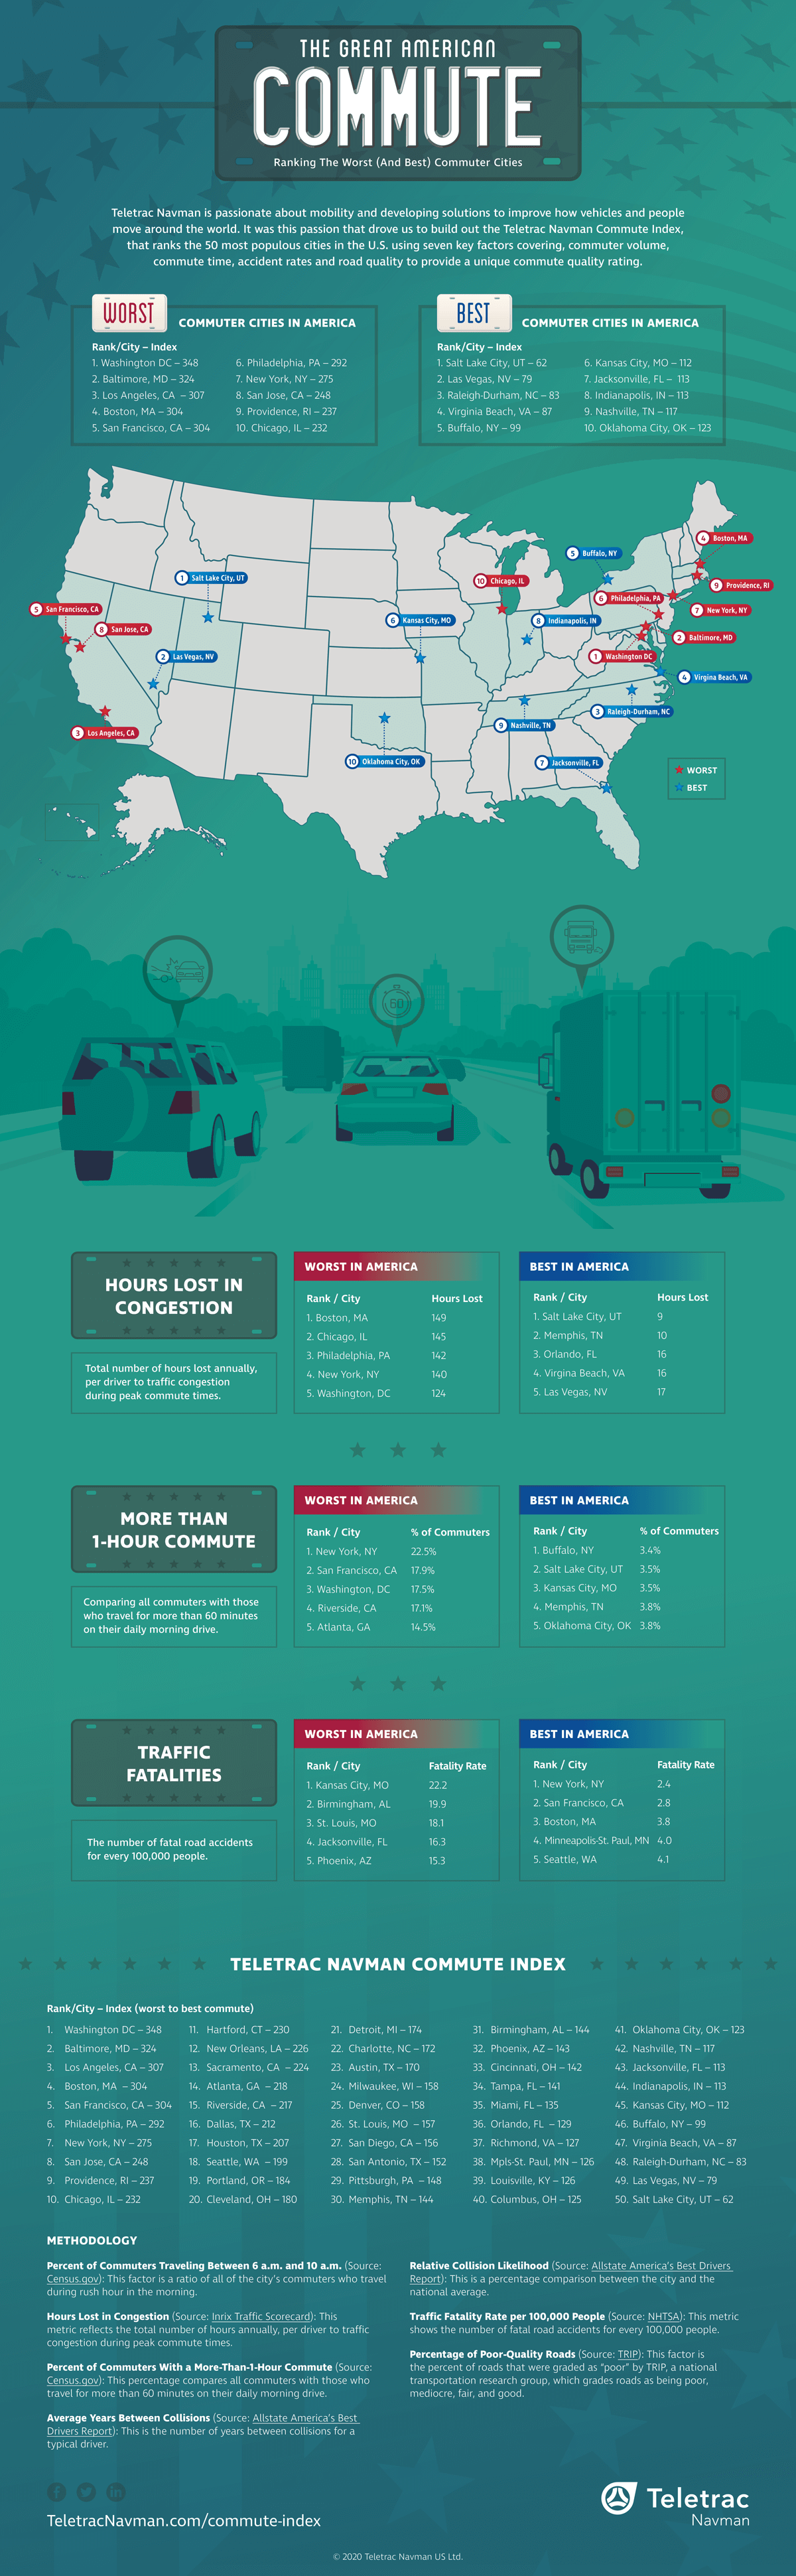 The Best and Worst Commutes in America